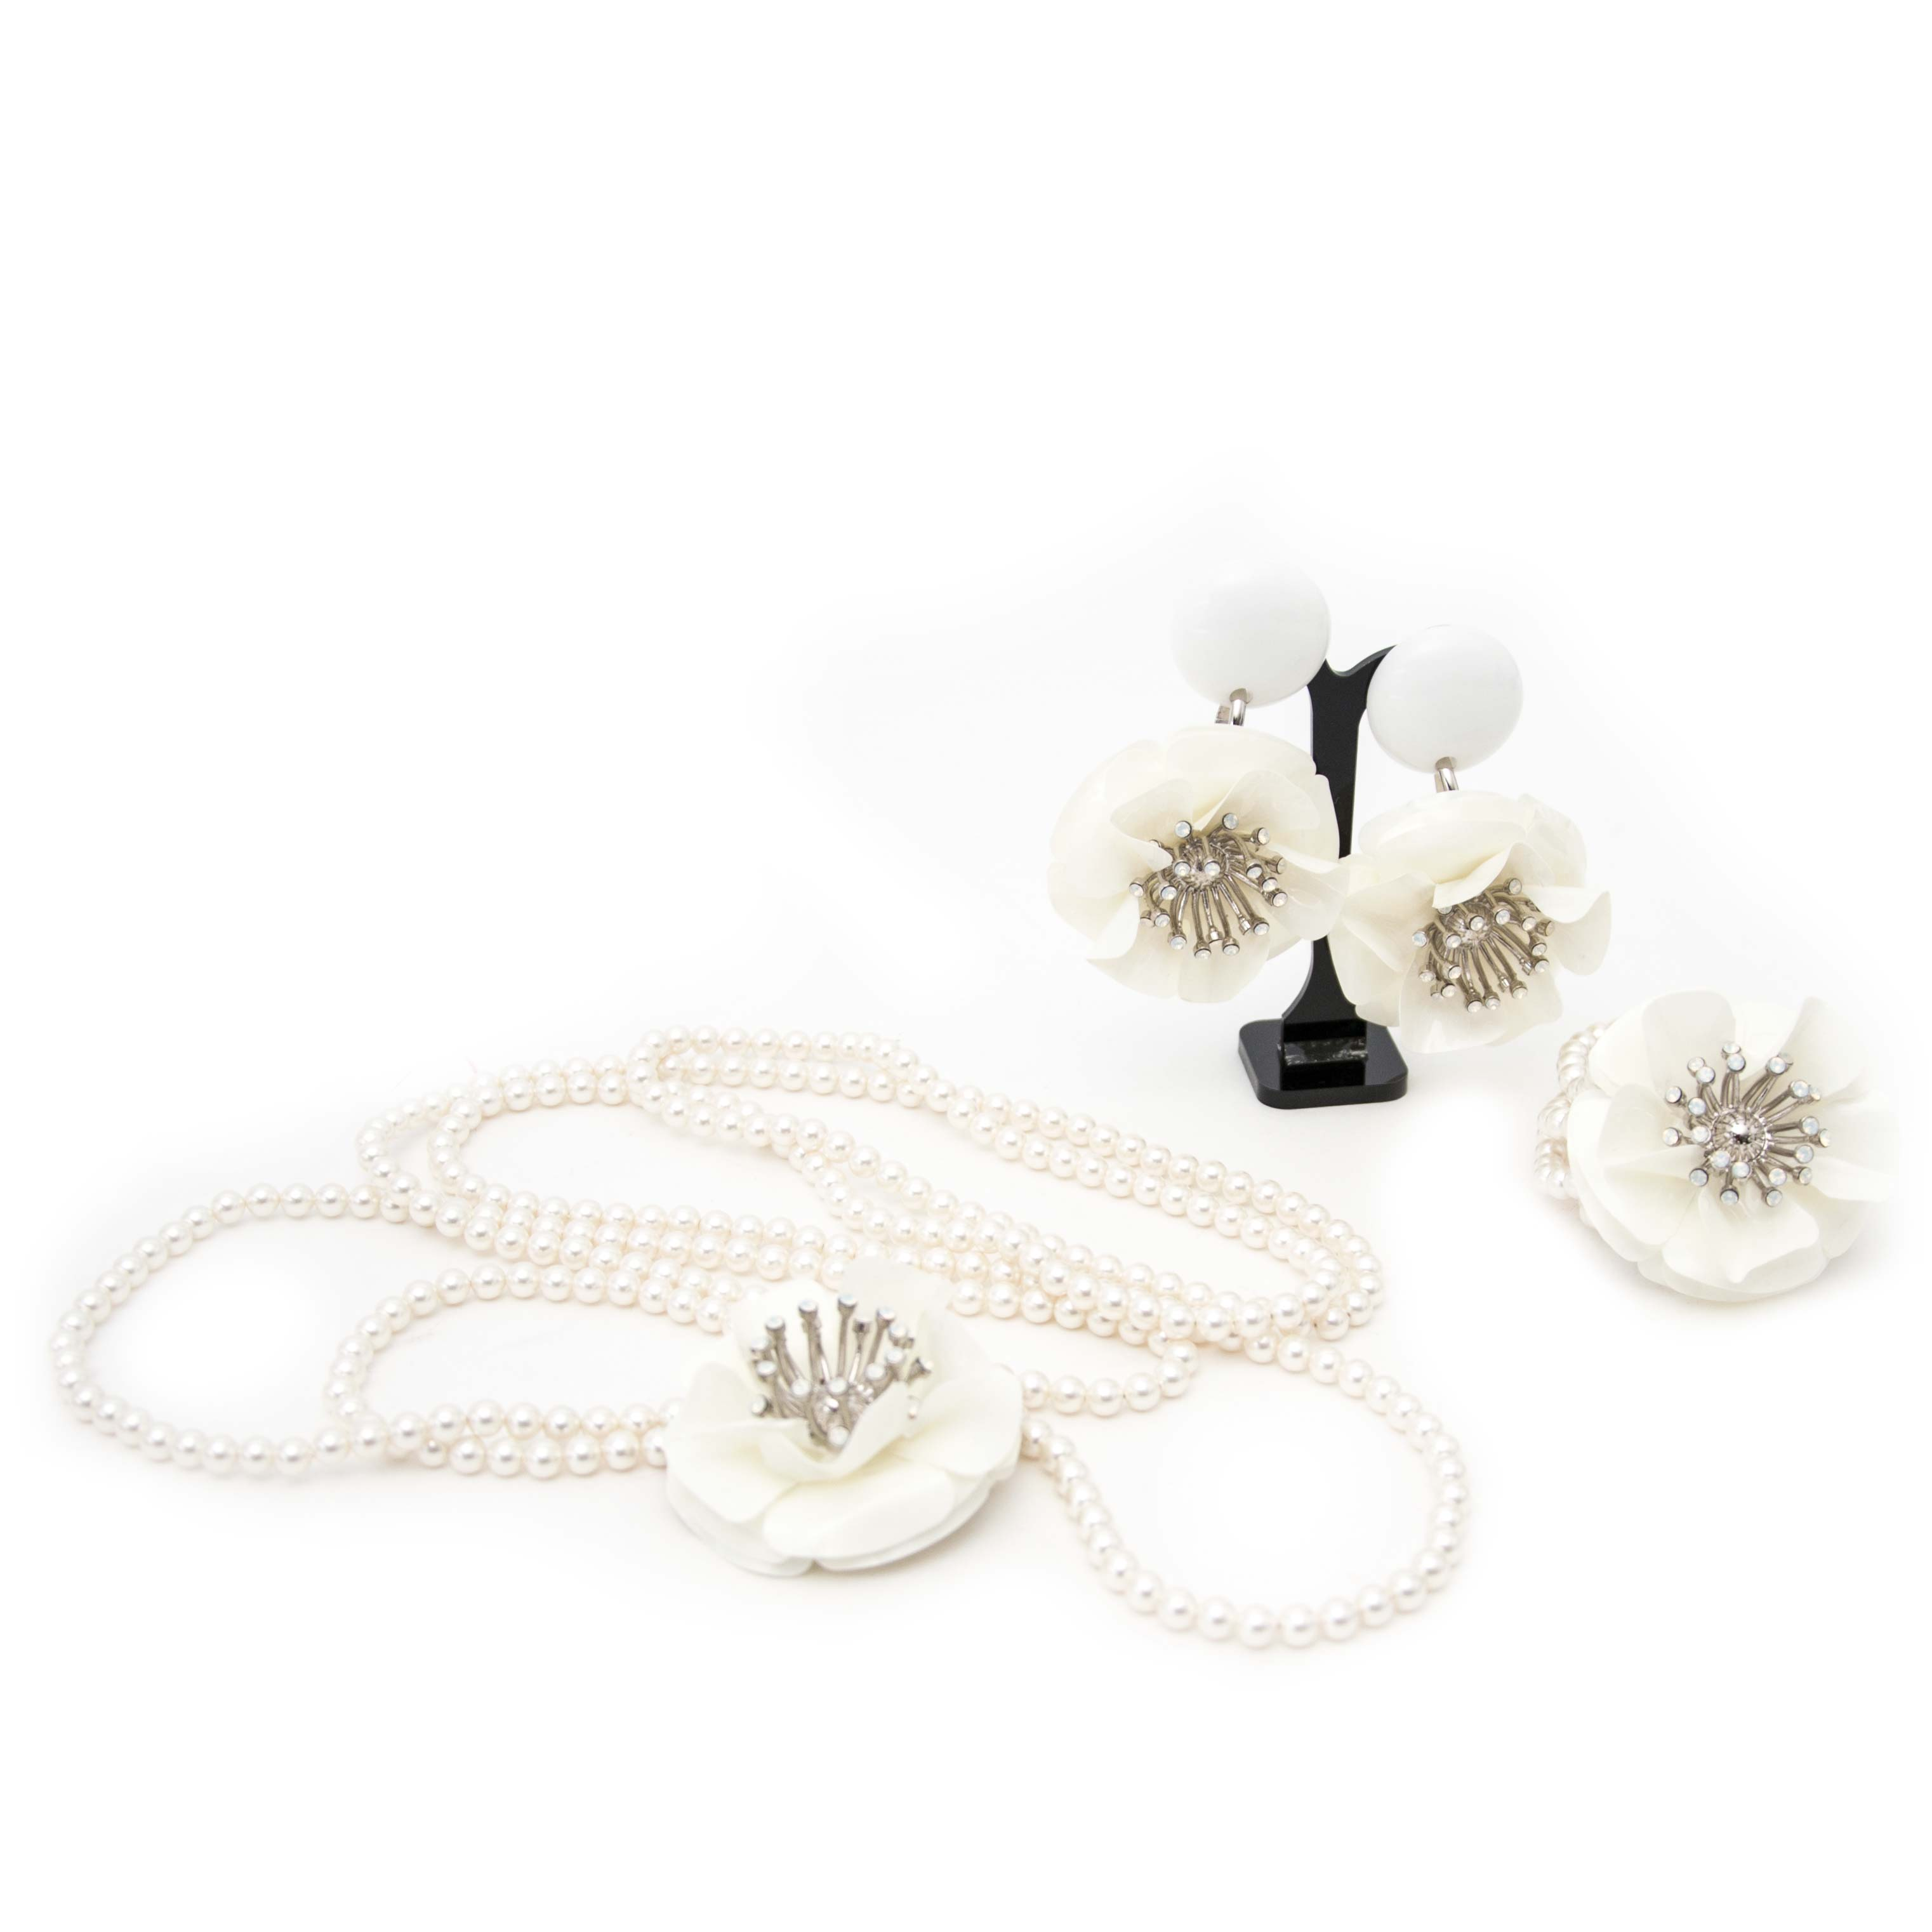 acheter en ligne Miu Miu White Flower Necklace, Earring, Bracelet Set